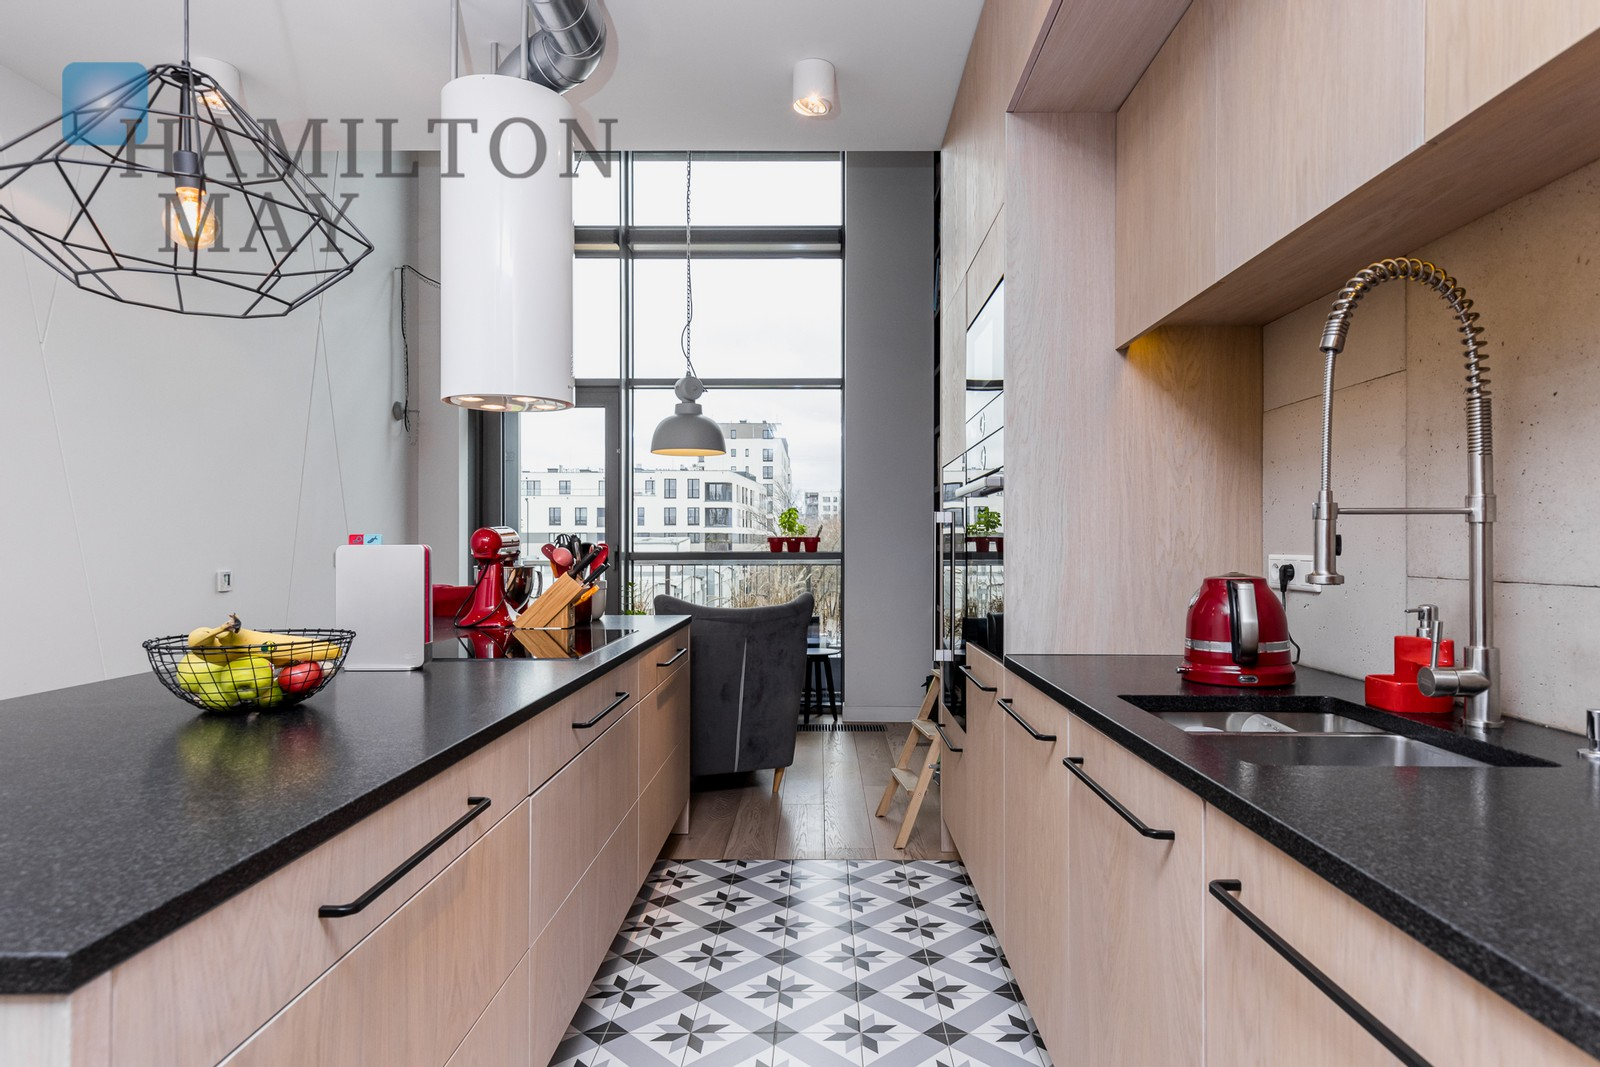 Stunning two bedroom duplex apartment in the Qbik development Warsaw for sale